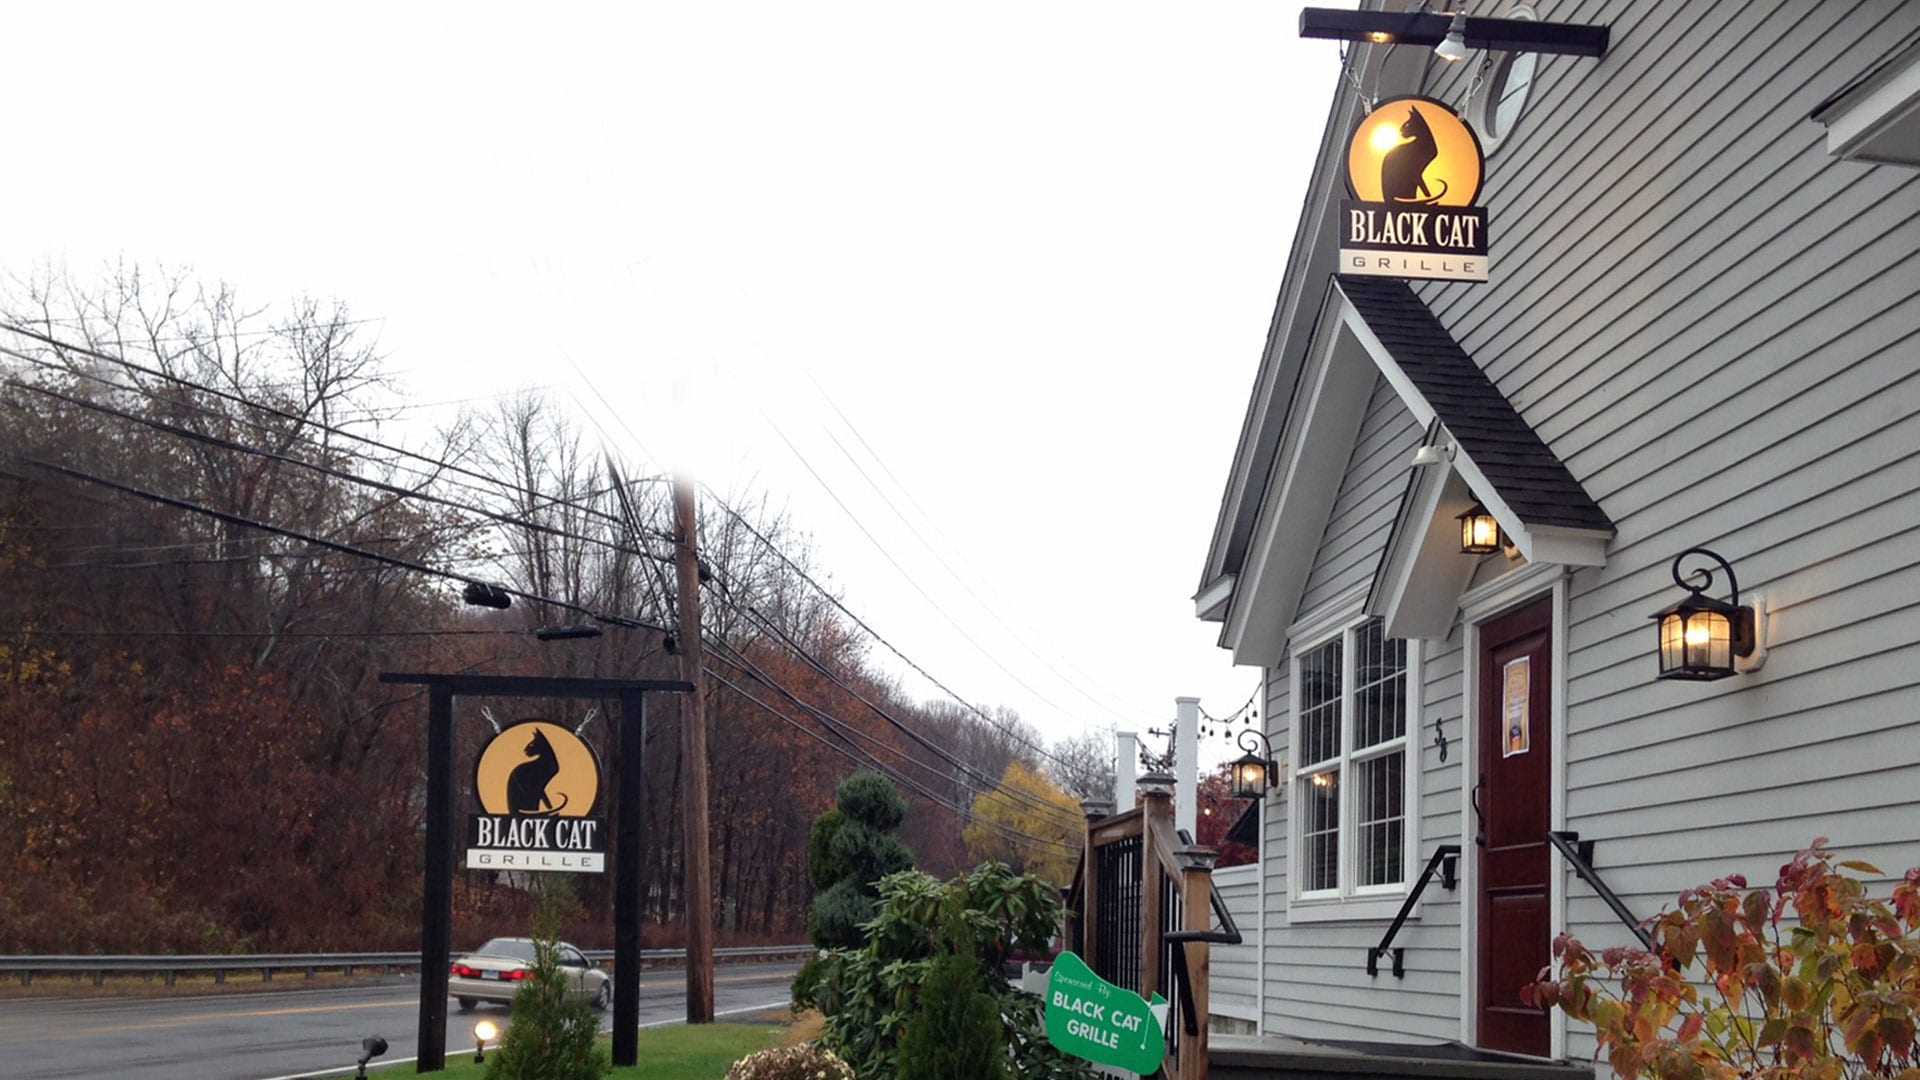 Two Hanging Signs for Black Cat Grille